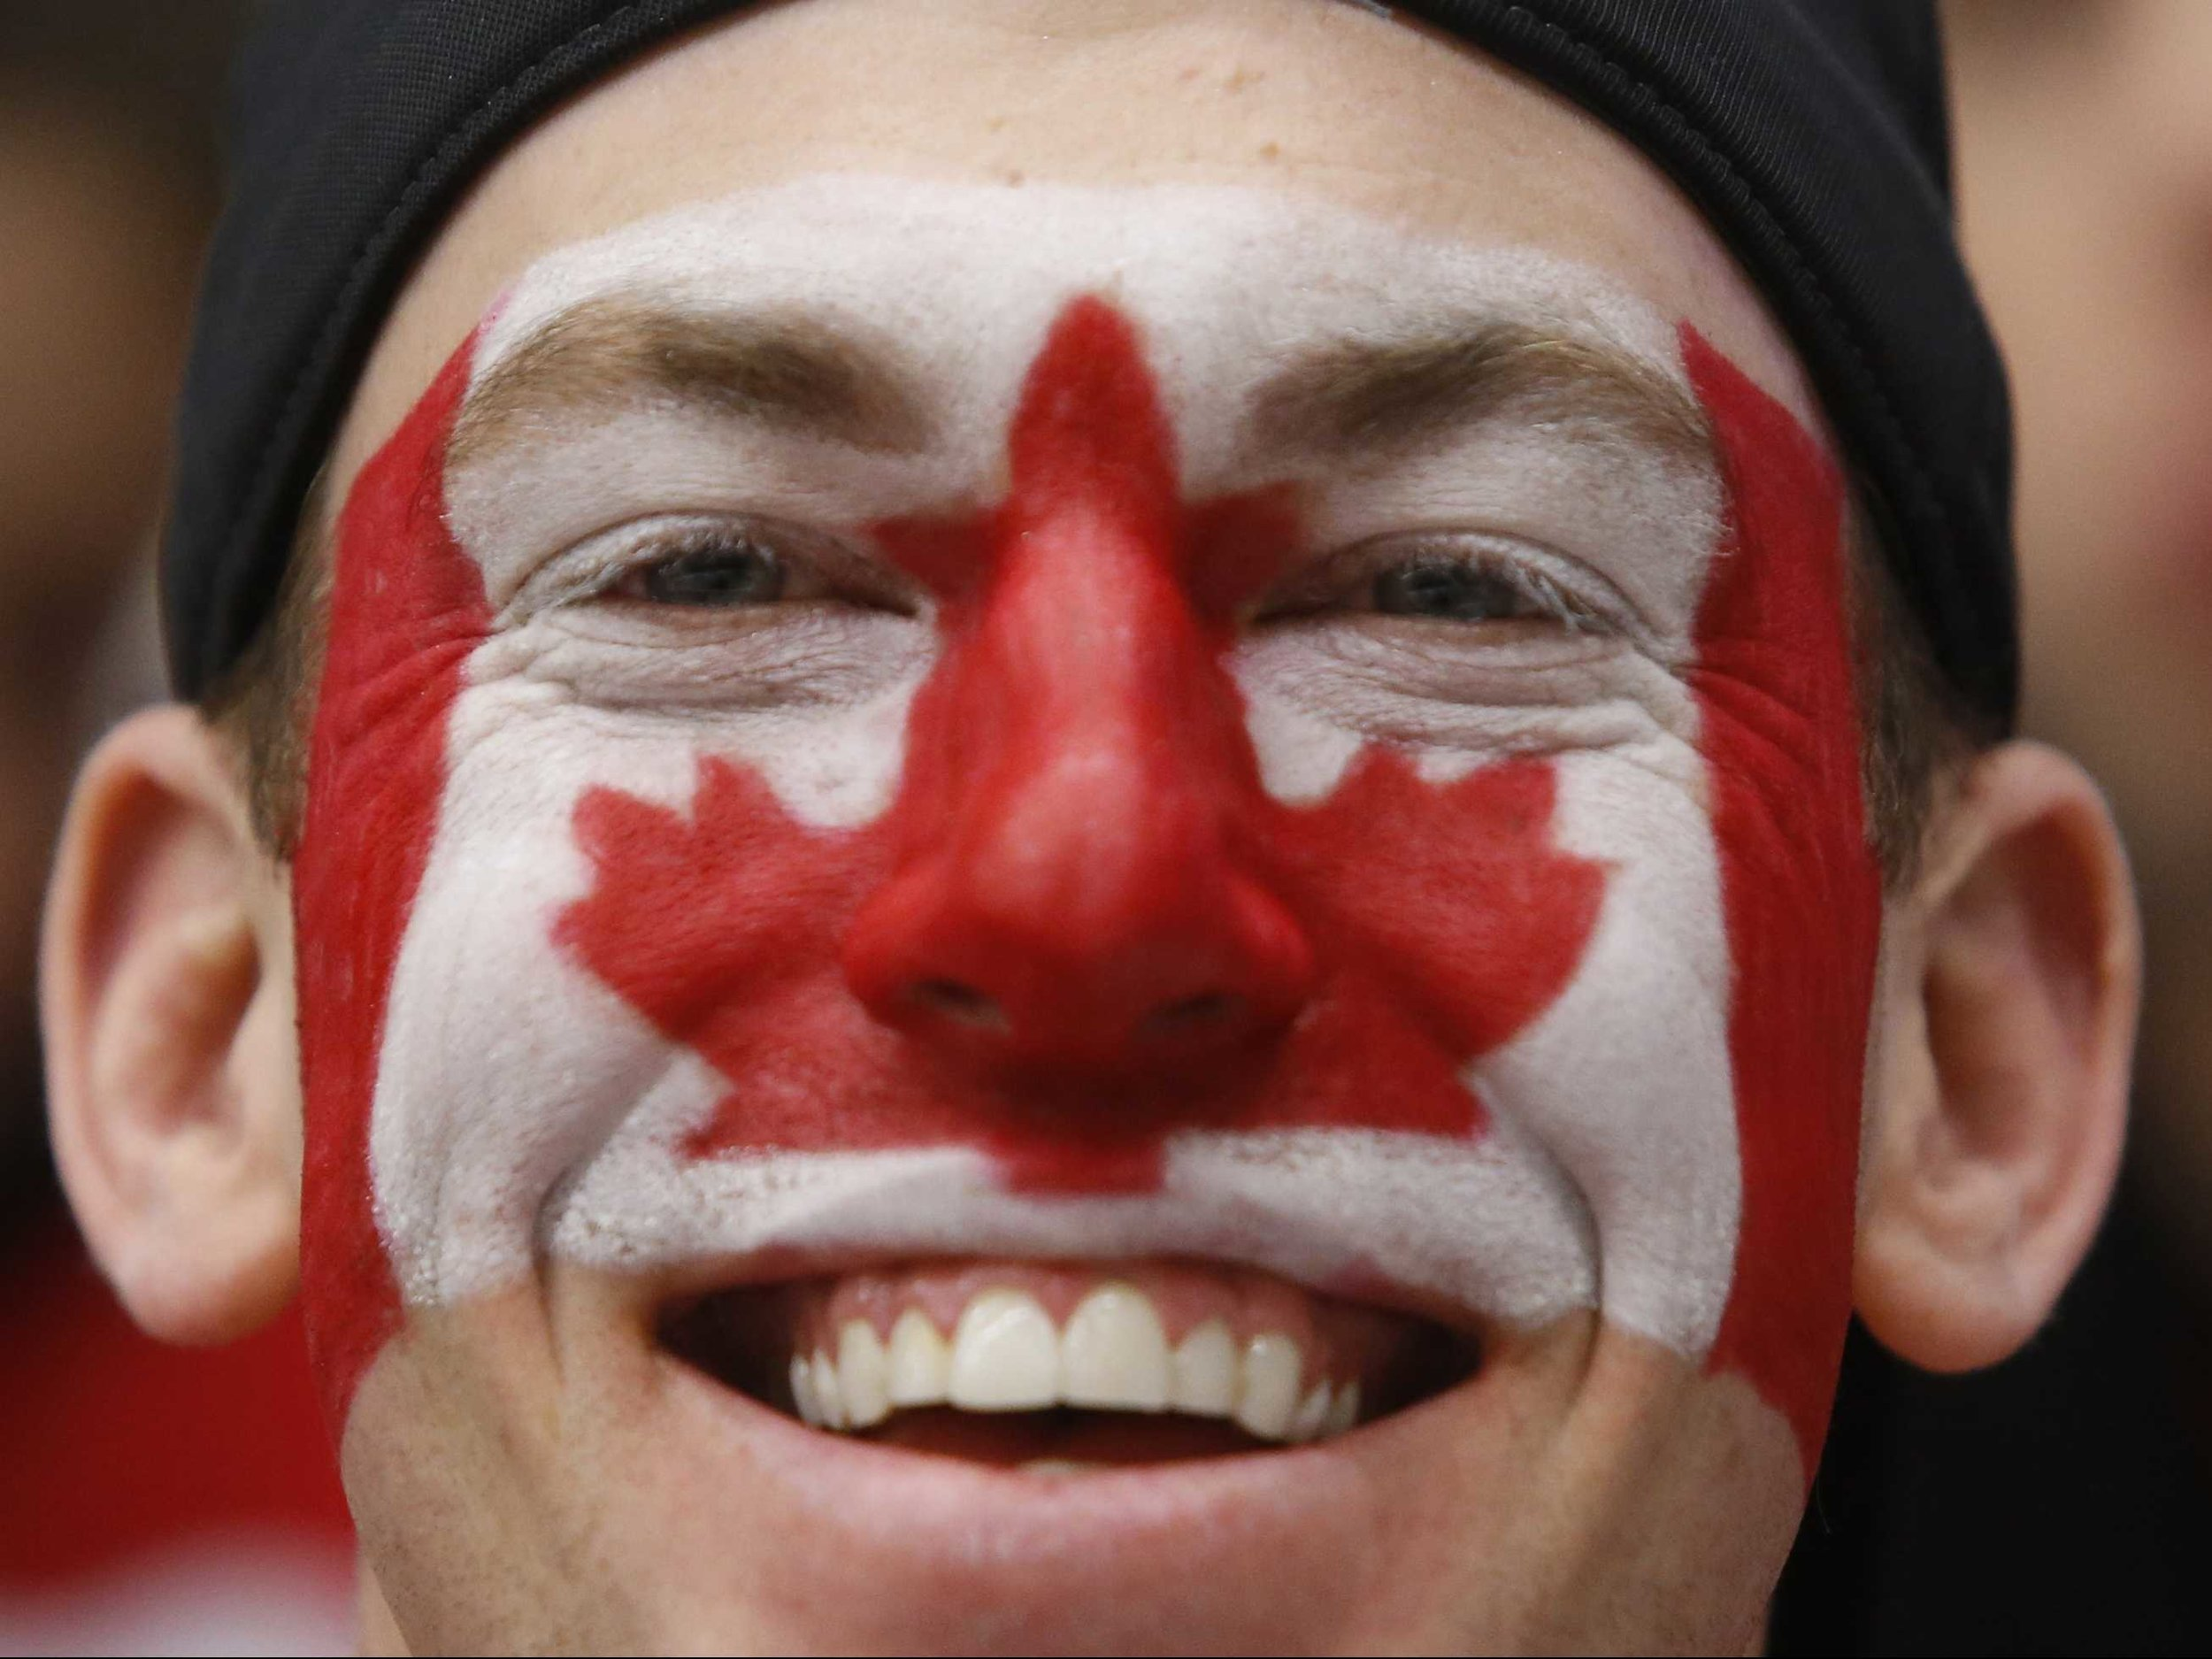 31-things-canadians-say-that-americans-dont-understand.jpg